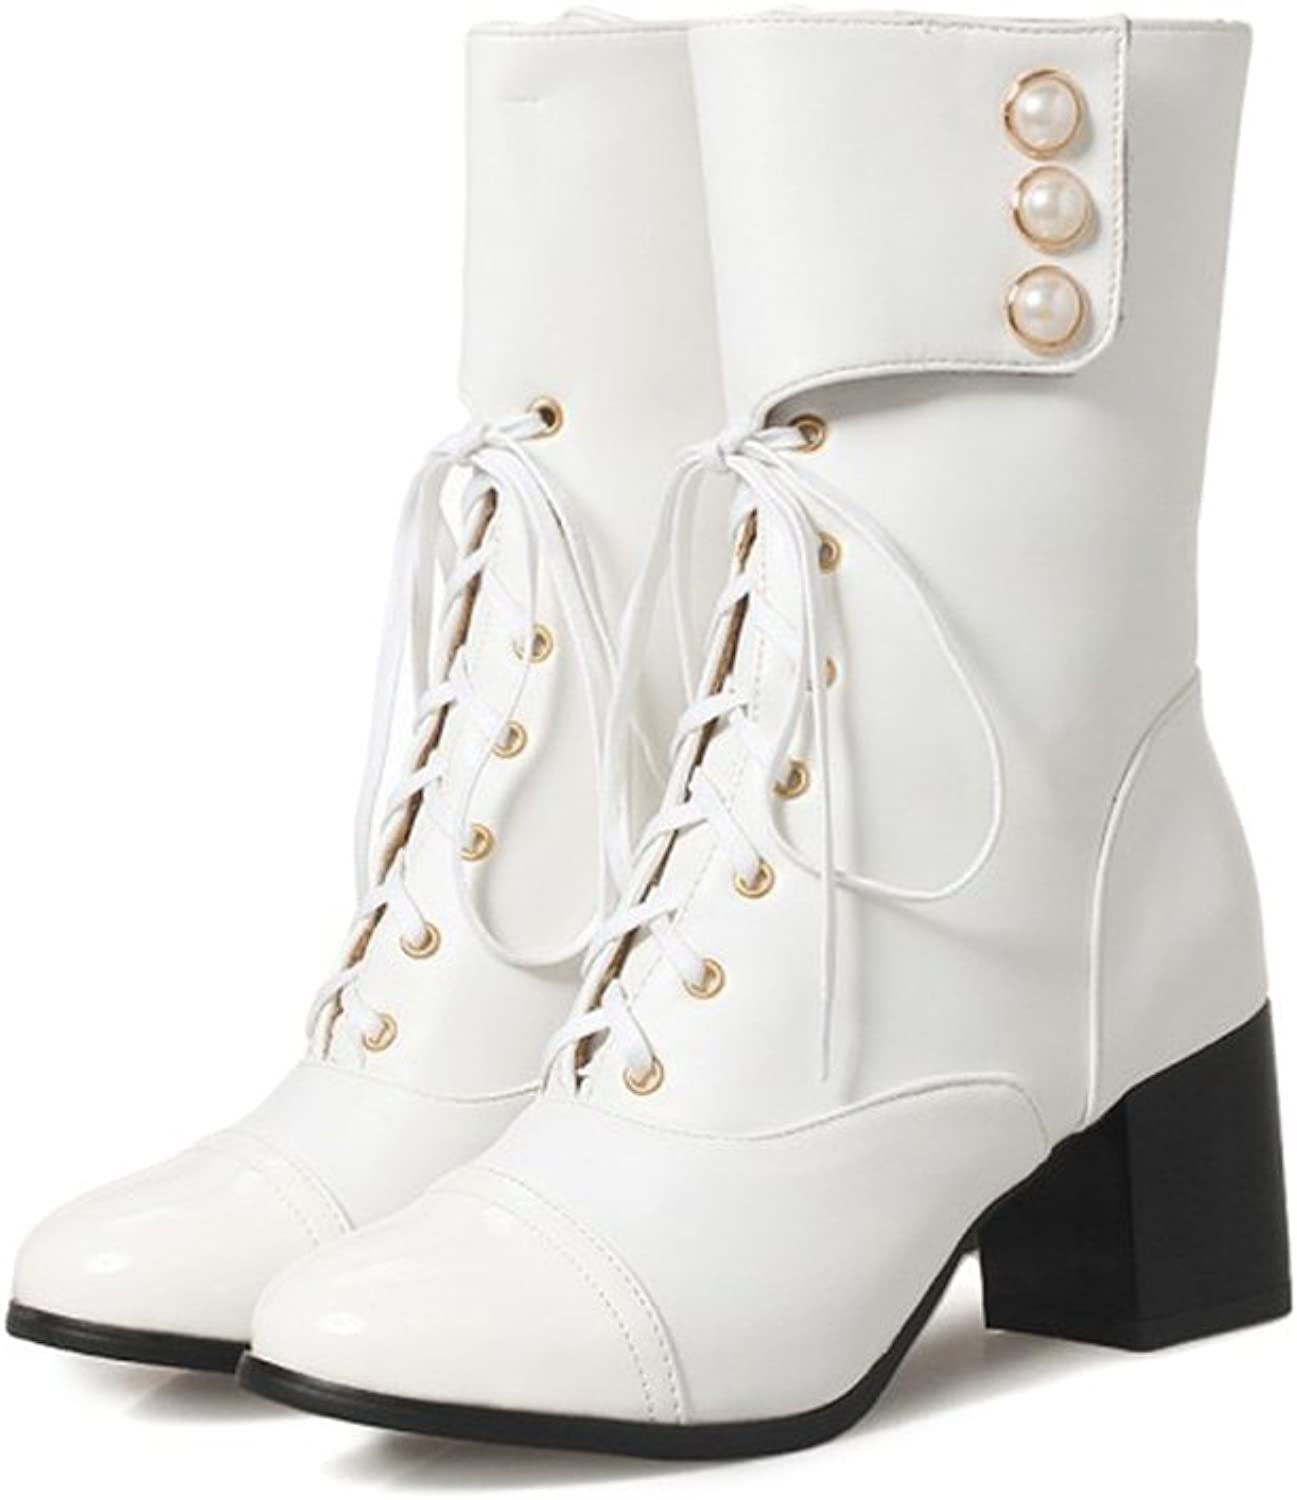 QZUnique Women shoes Fashion Square Mid-Calf Lace Up Mid-Heel Booties Round Toe Martin Boots